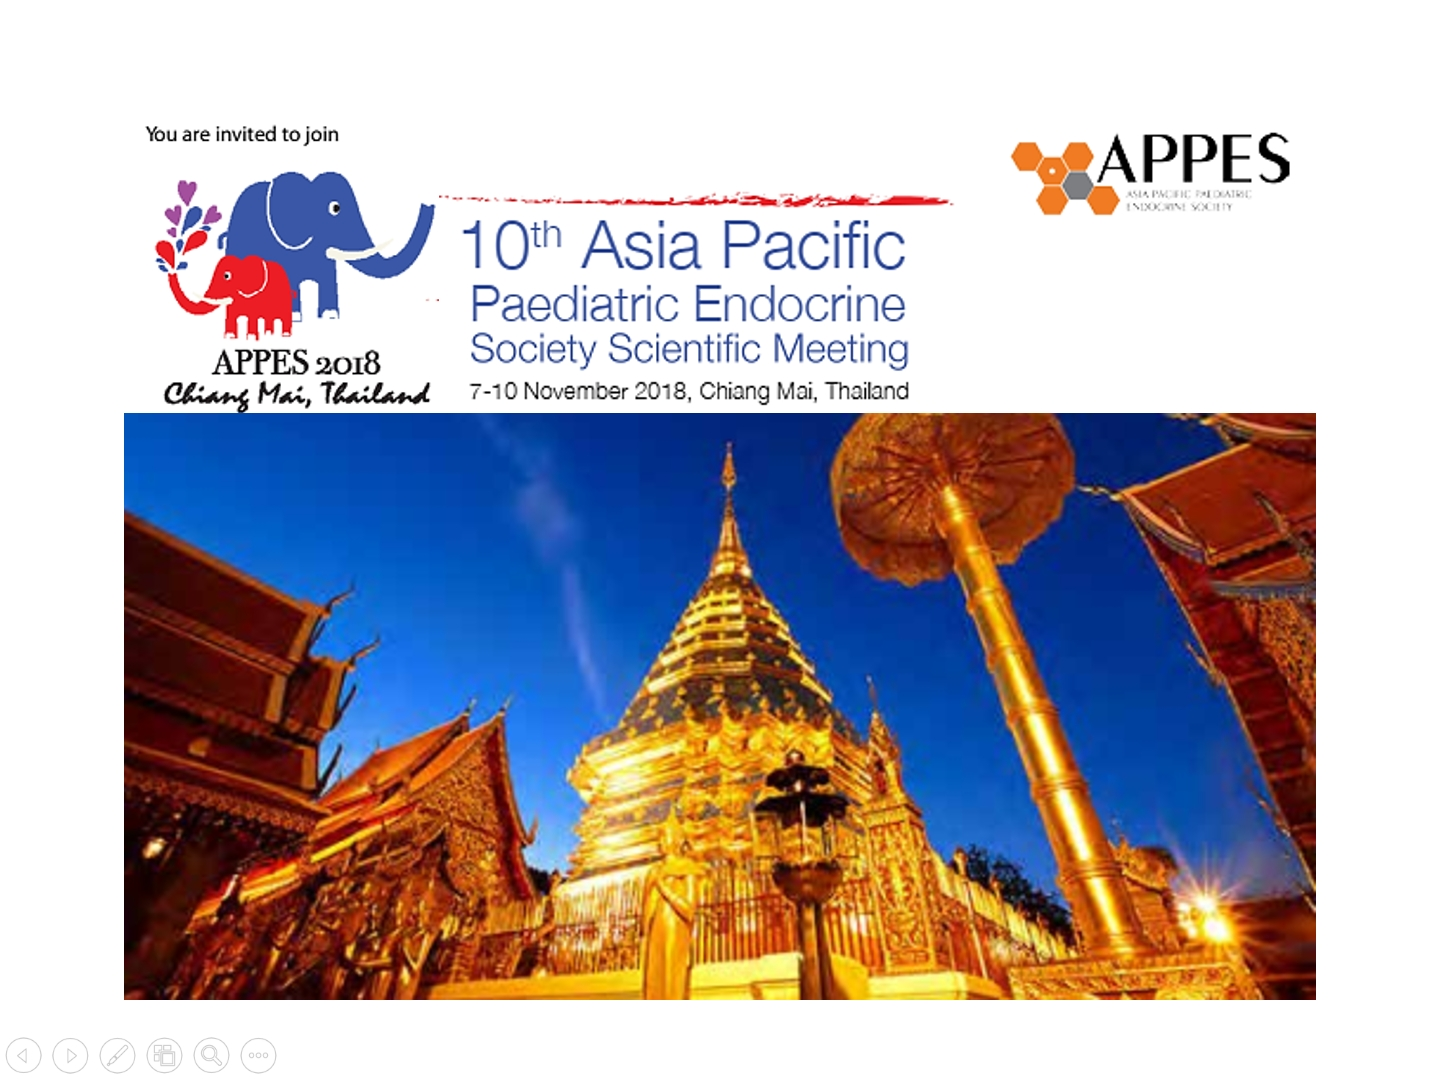 Asia Pacific Paediatric Endocrine Society (APPES) Scientific Meeting 7-10 November 2018